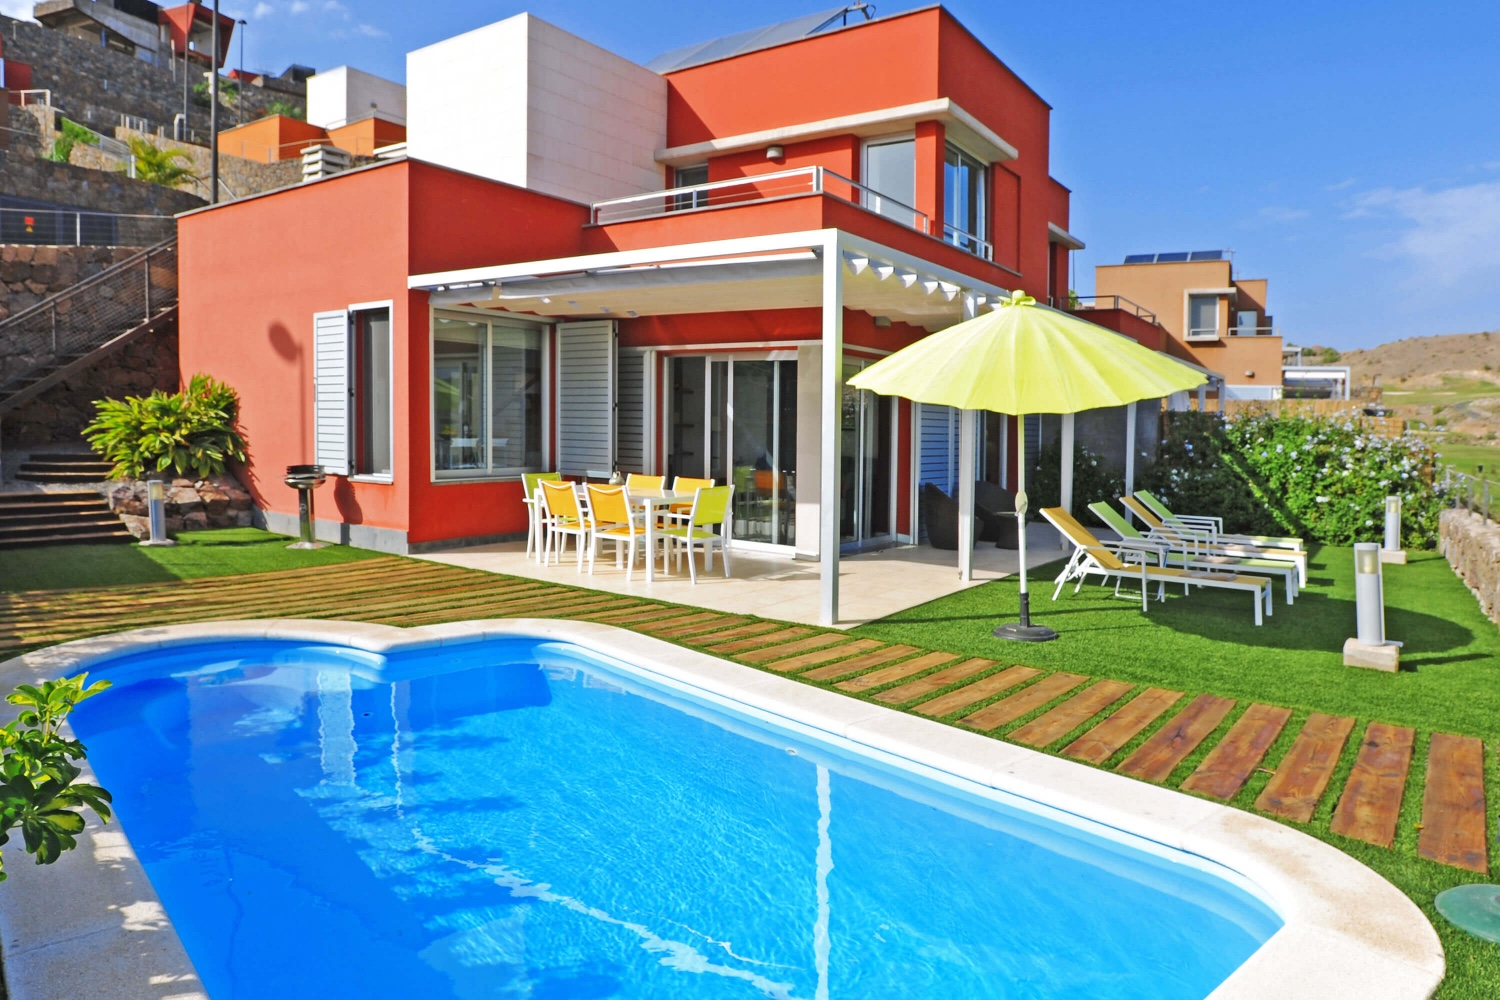 Villa to rent directly at the golf course with large garden area with nice terrace, barbecue area and heatable pool